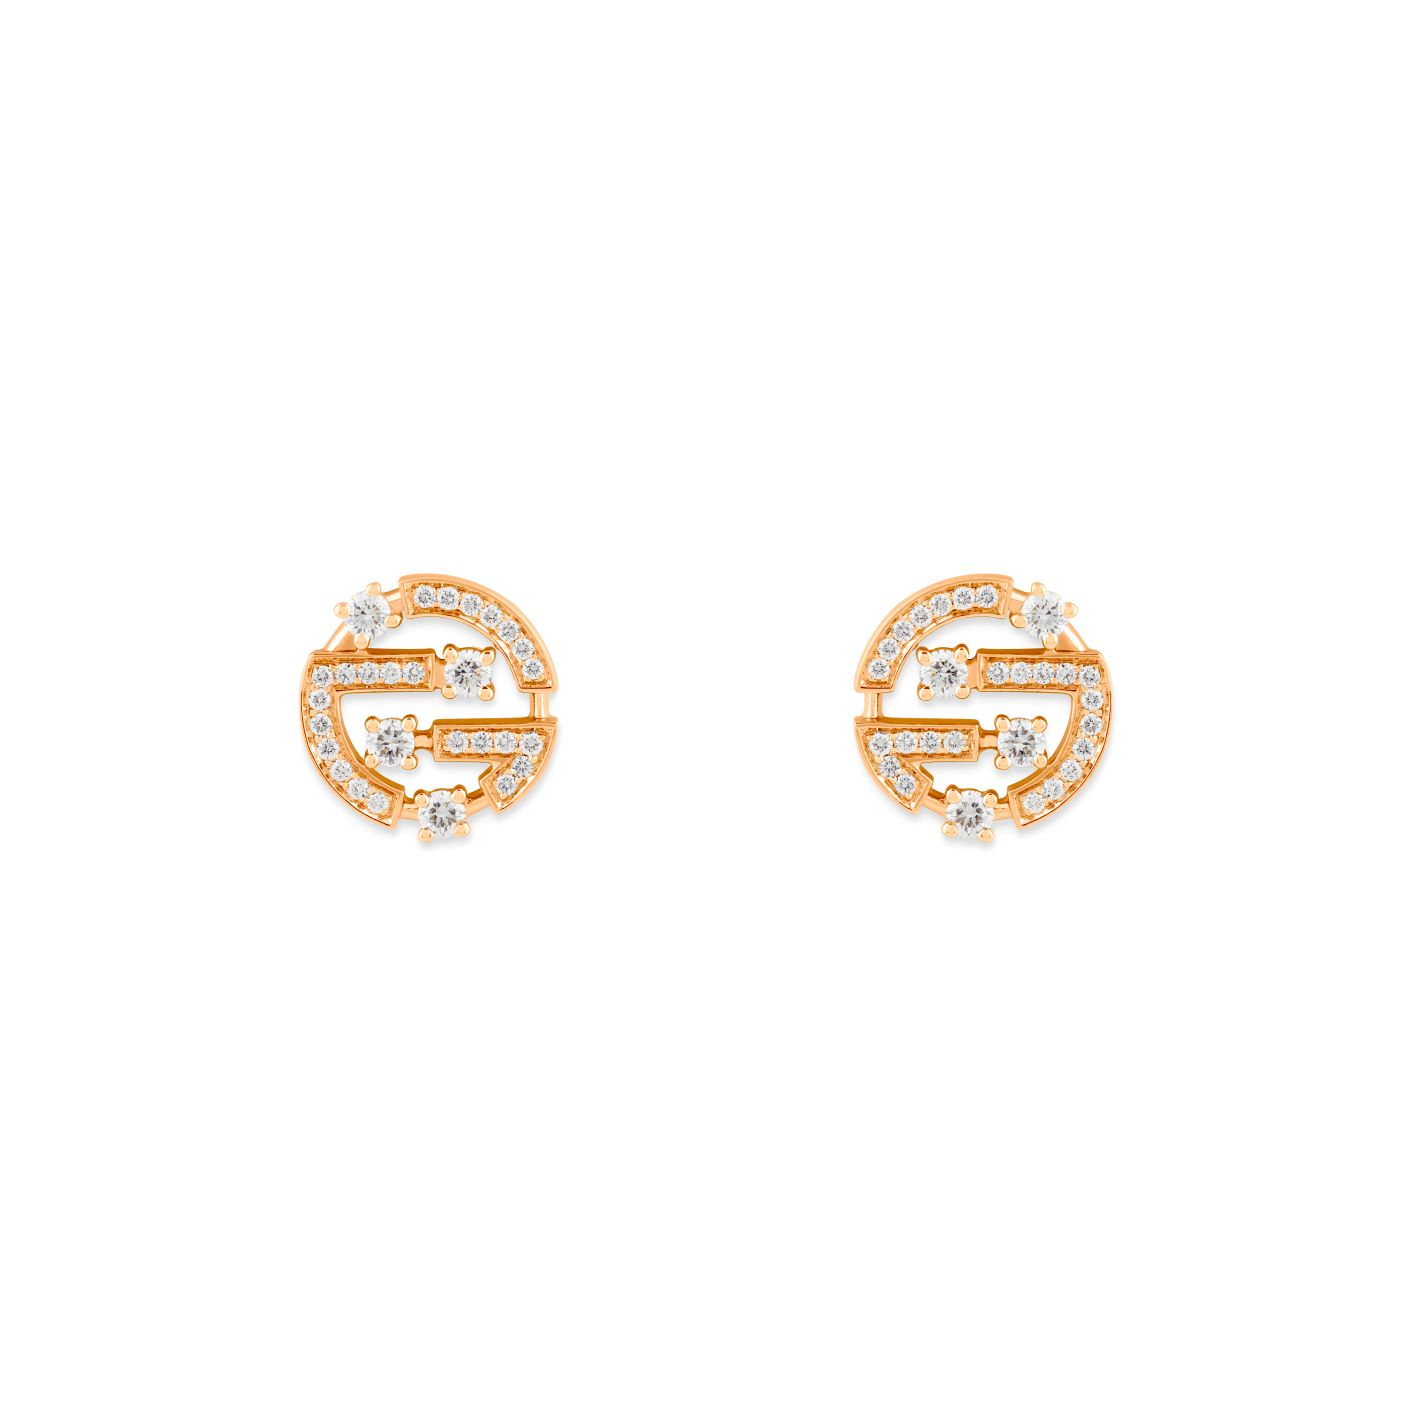 Avenues Stud Earrings